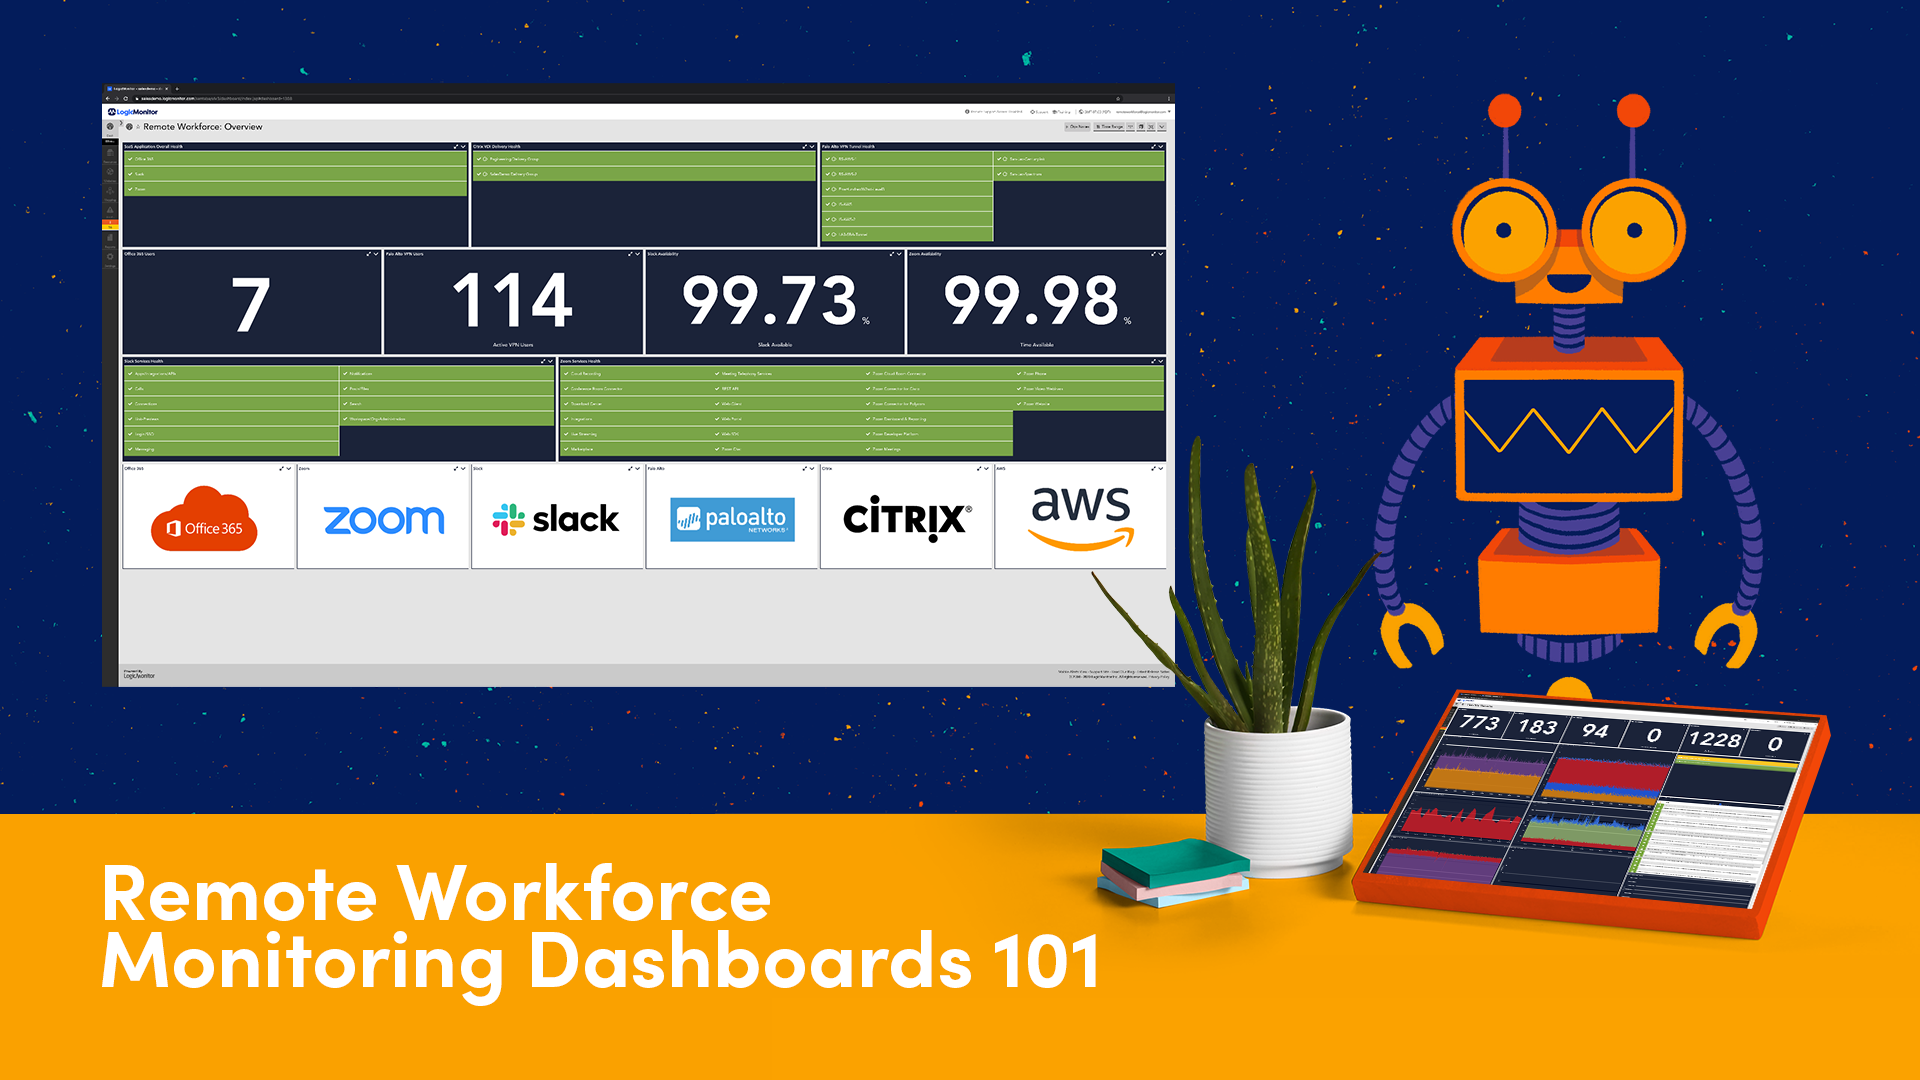 Remote Workforce Monitoring Dashboards 101